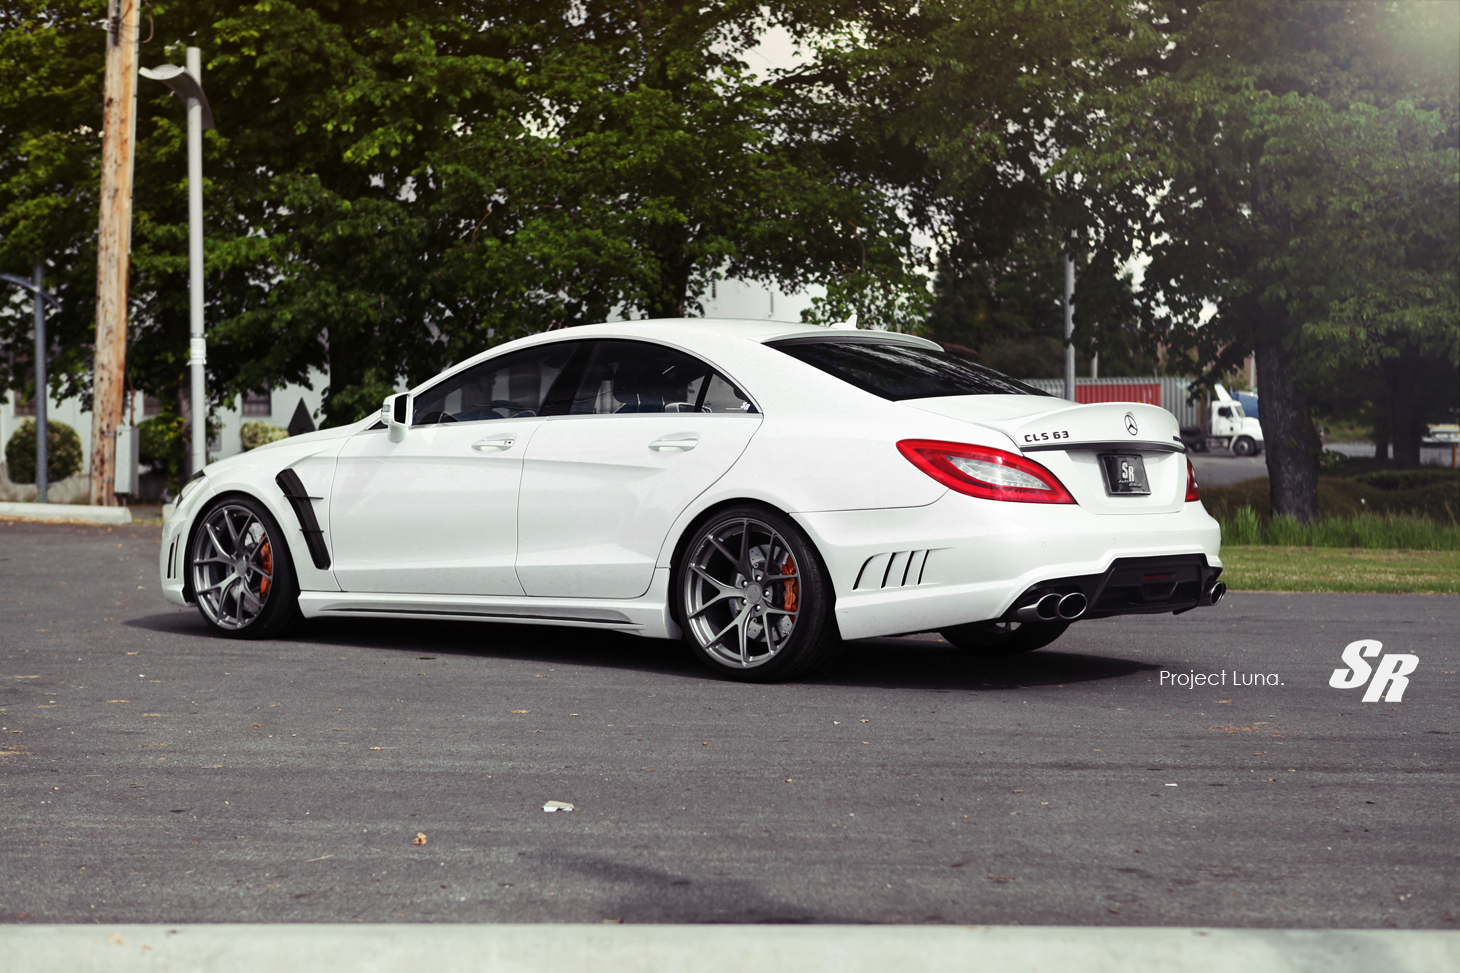 2015 Mercedes Benz Cls63 Amg S Model also Article Mercedes Cls 63 S Amg 2014 124393185 furthermore Mercedes G65 Amg Leads Mercedes Amg Limited Edition White Series Scale Models 89916 moreover Bmw Alpina B5 2011 Review together with 455066 Brabus Cls63 W218. on cls63 amg logo